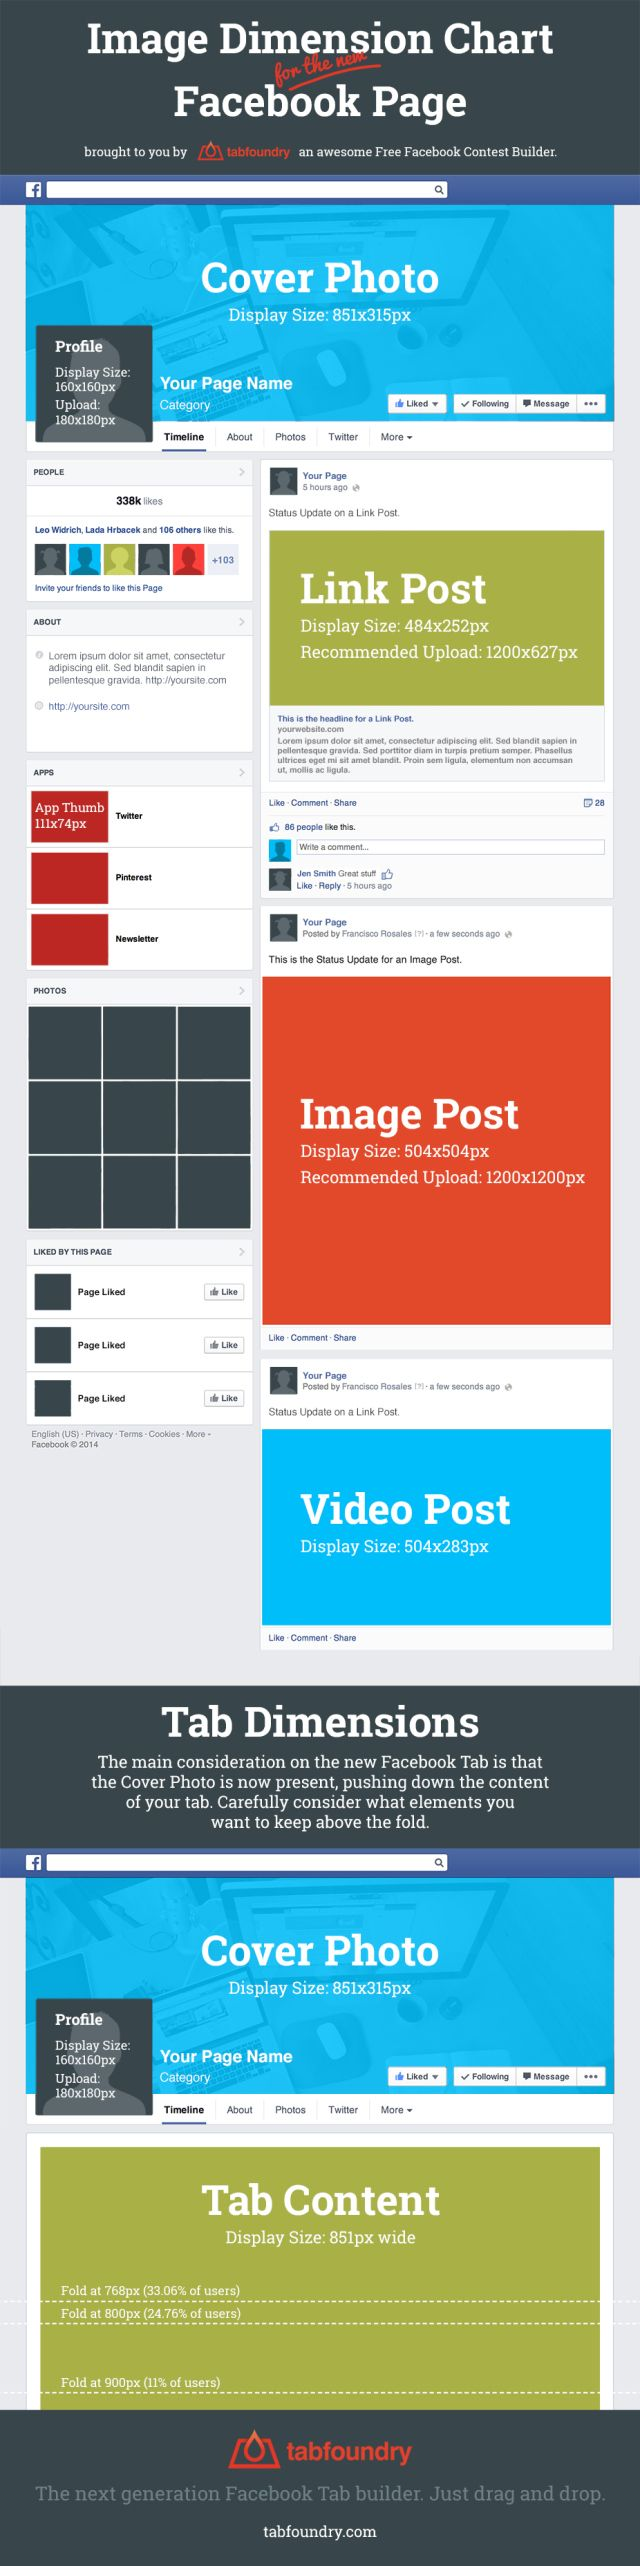 Image dimmension chart for the new FaceBook Page #infographic: Website, Images Dimen, Web Site, Social Media, Dimen Charts, Internet Site, Socialmedia, Facebook Marketing, Dimens Imágen